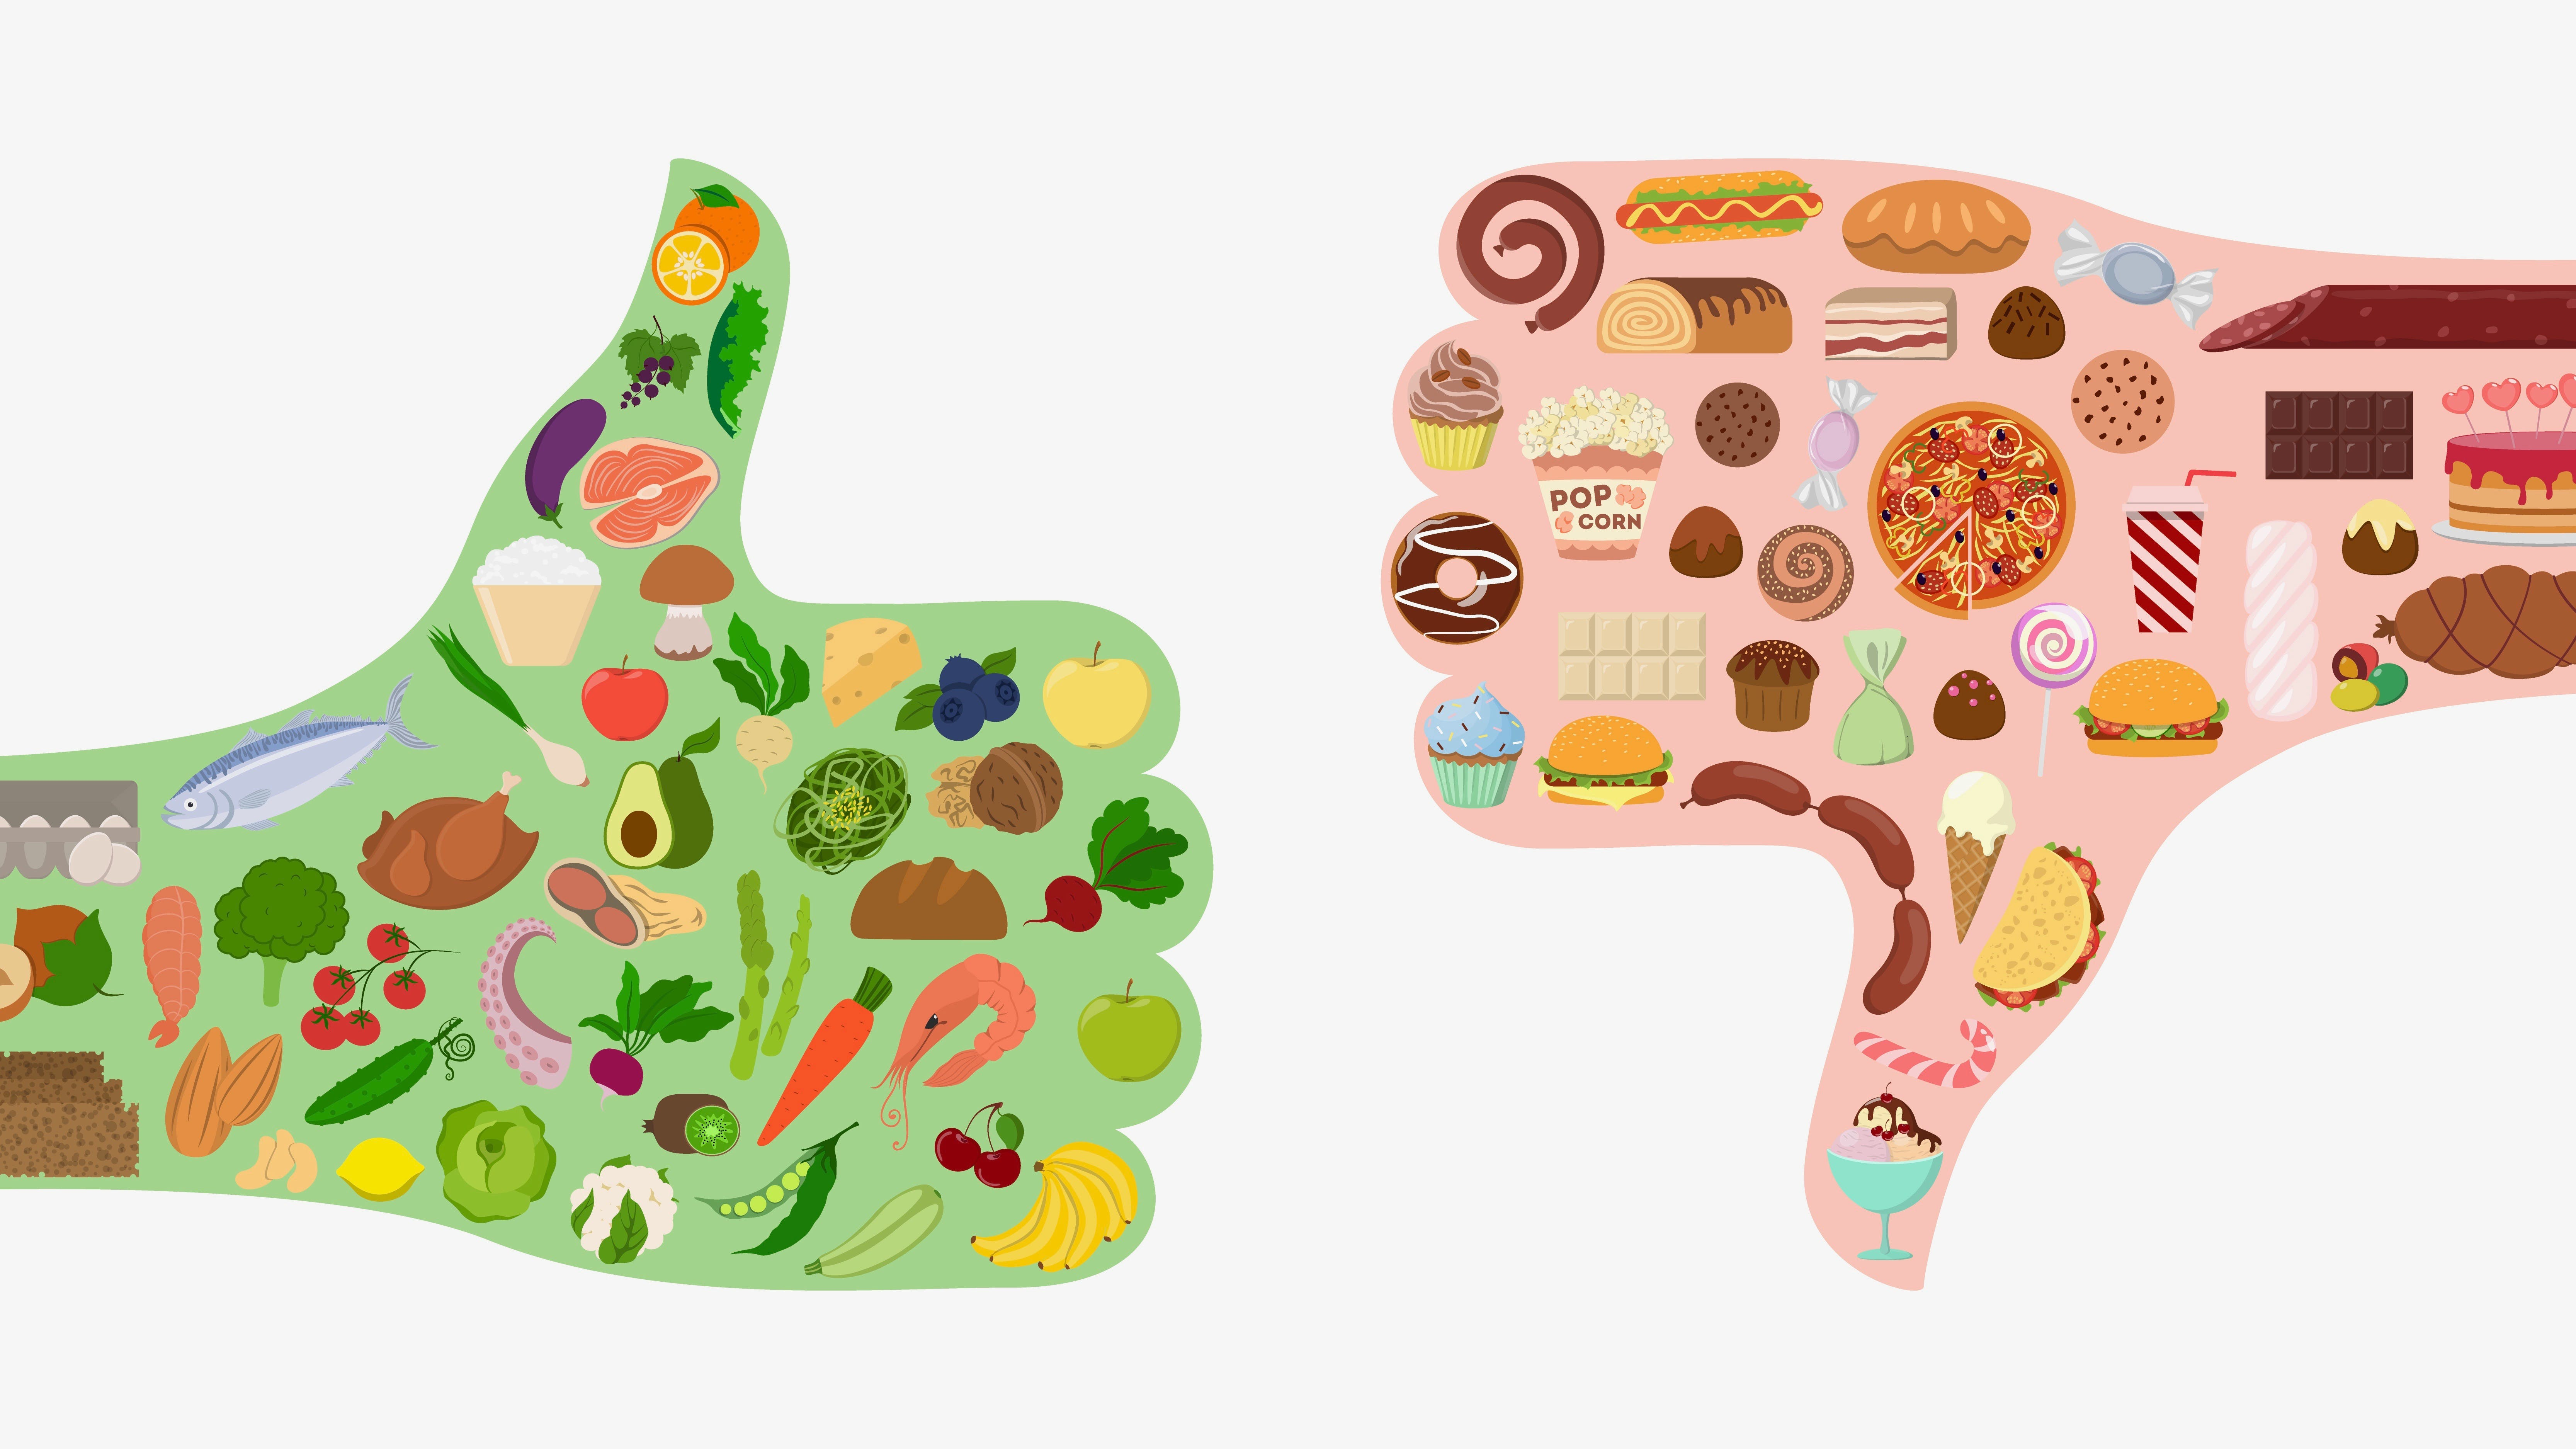 Mainstream food columnist questions dietary guidelines